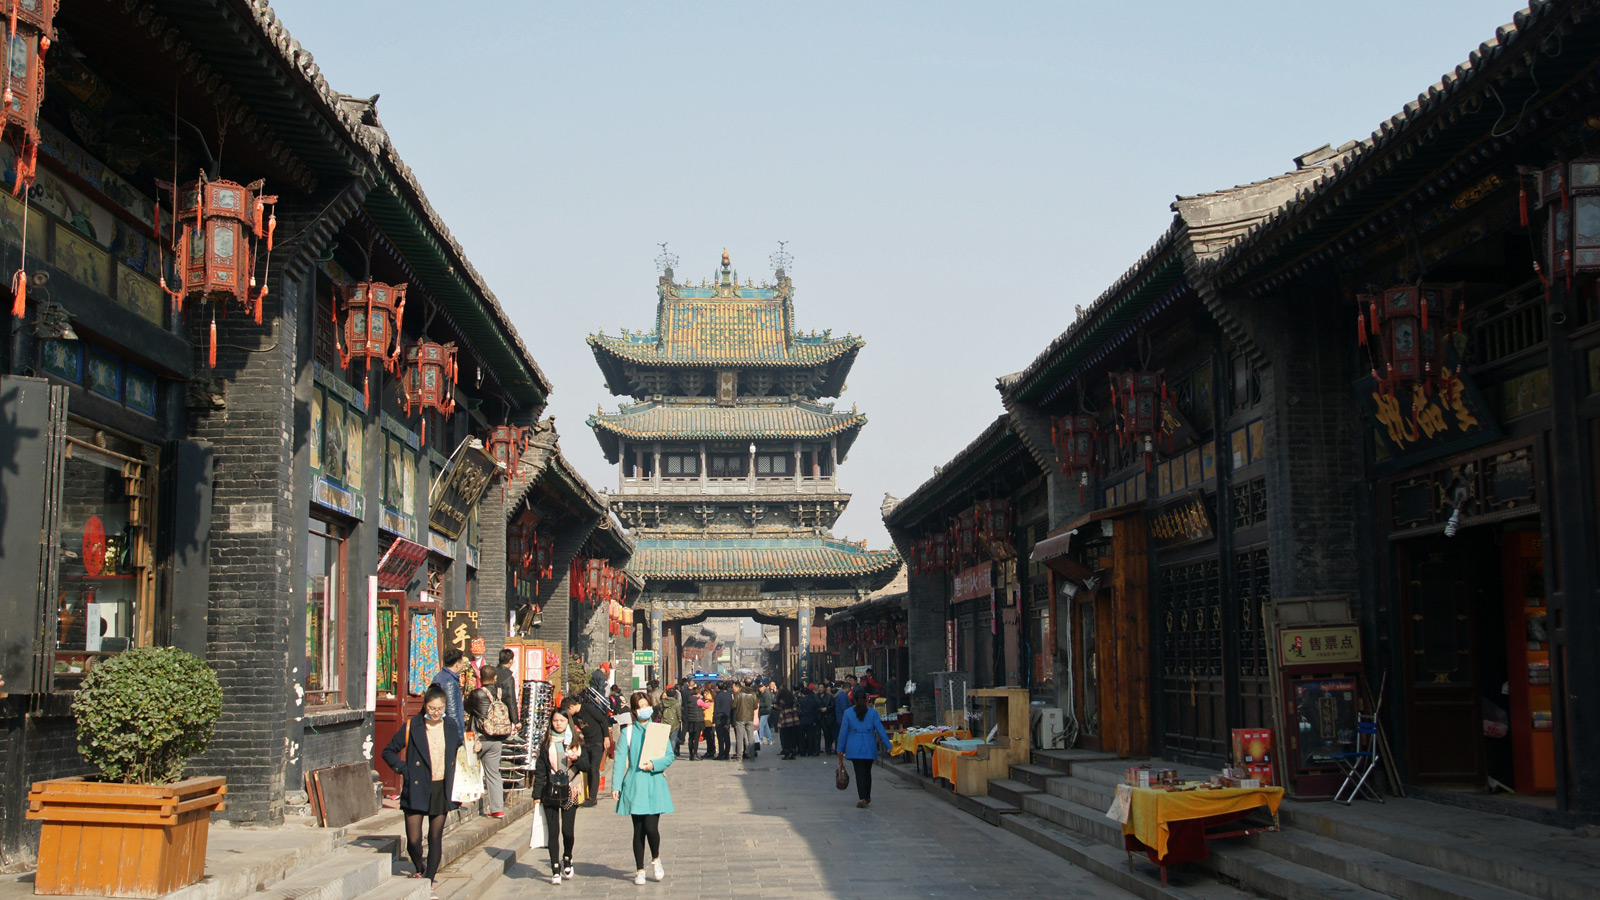 Ontdek China in Pingyao